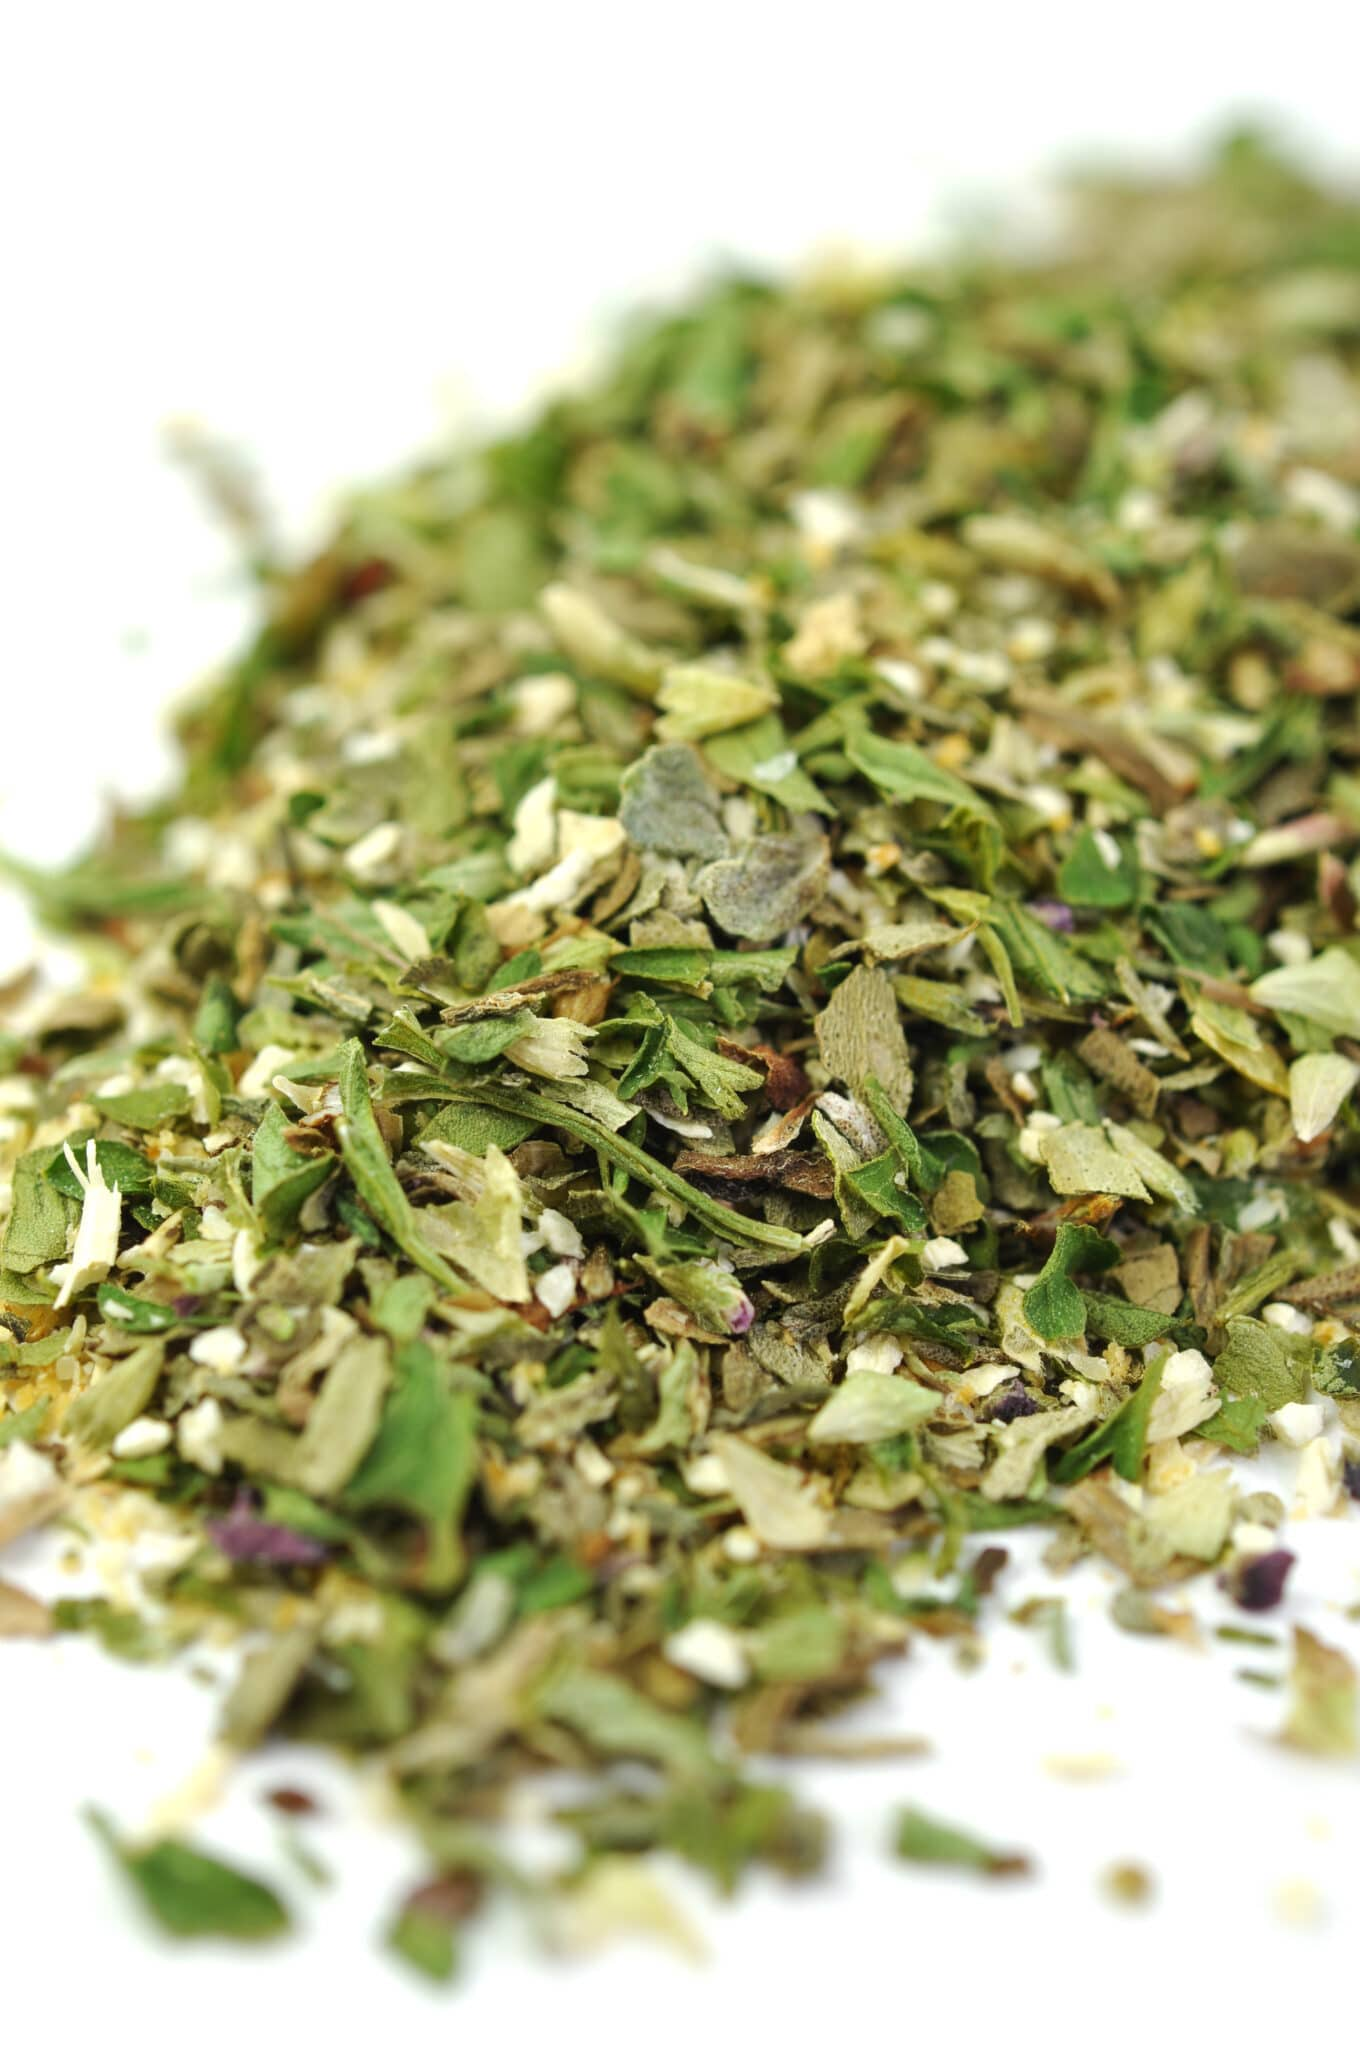 Dried herbs in a pile close up image.